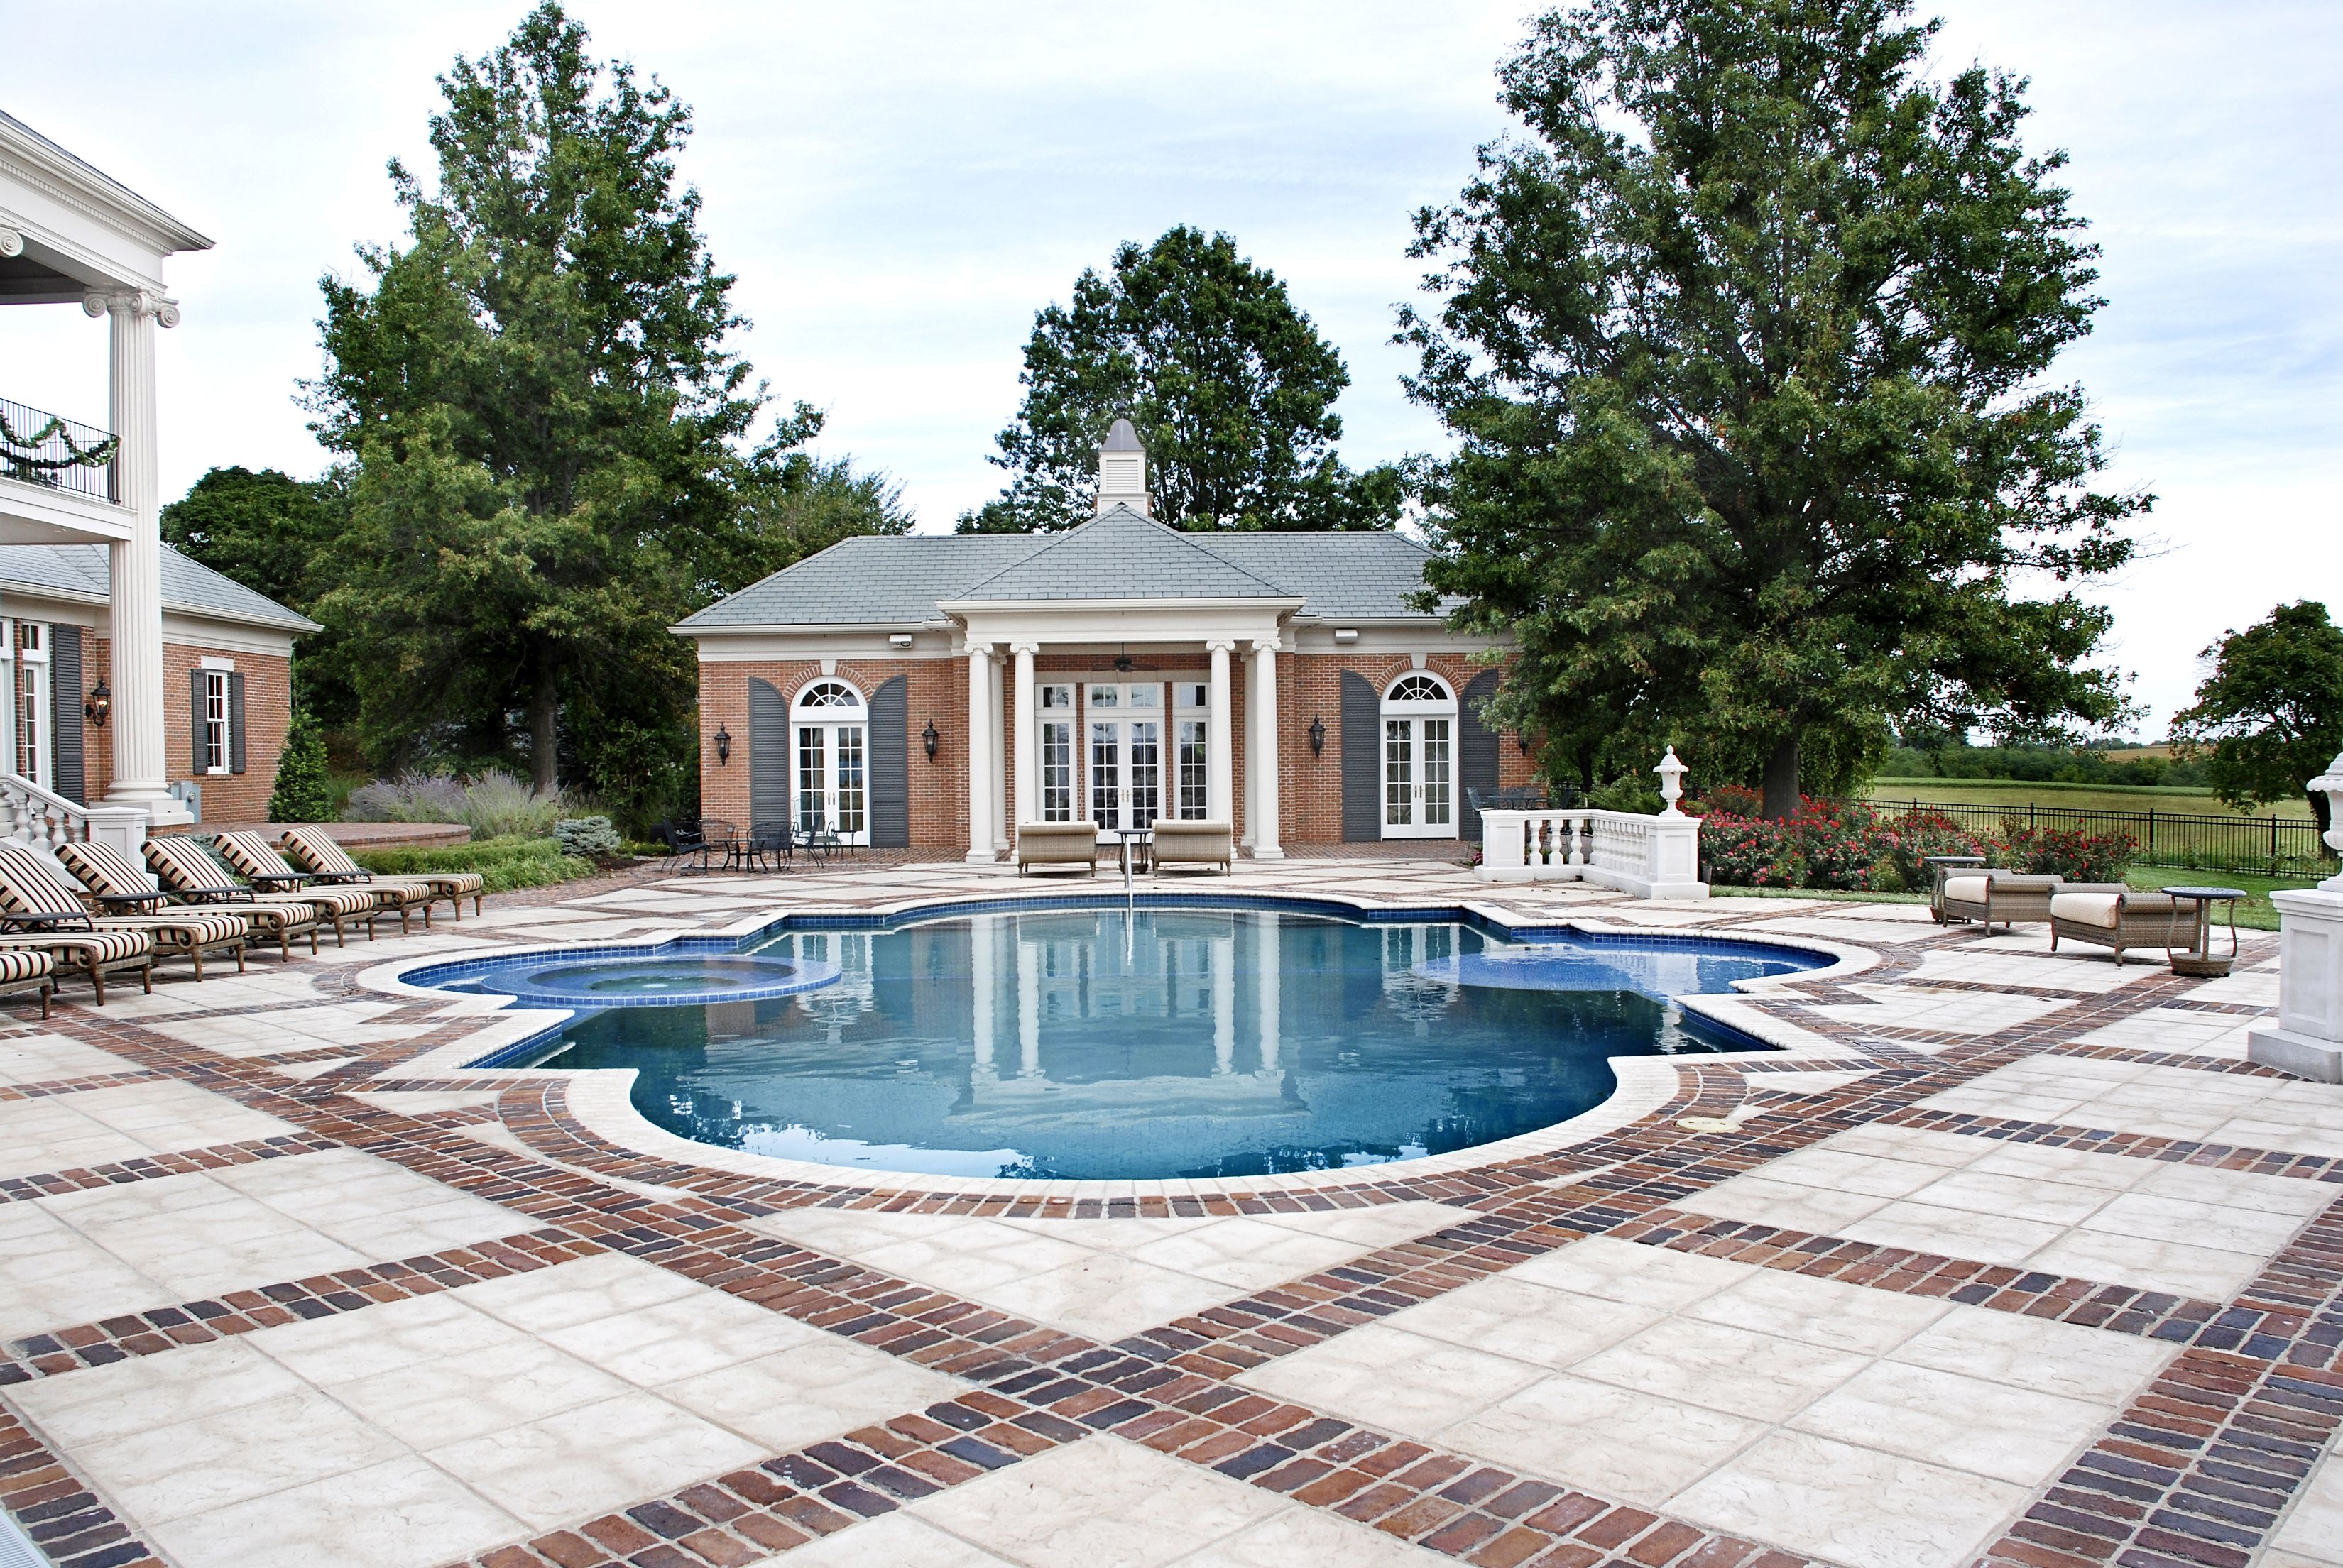 Nspjarchitects Pool Residential Residentialpool Exterior Home Backyard Backyardinspo Poolinspo Traditional Brick Home Antebellum Home Red Brick House